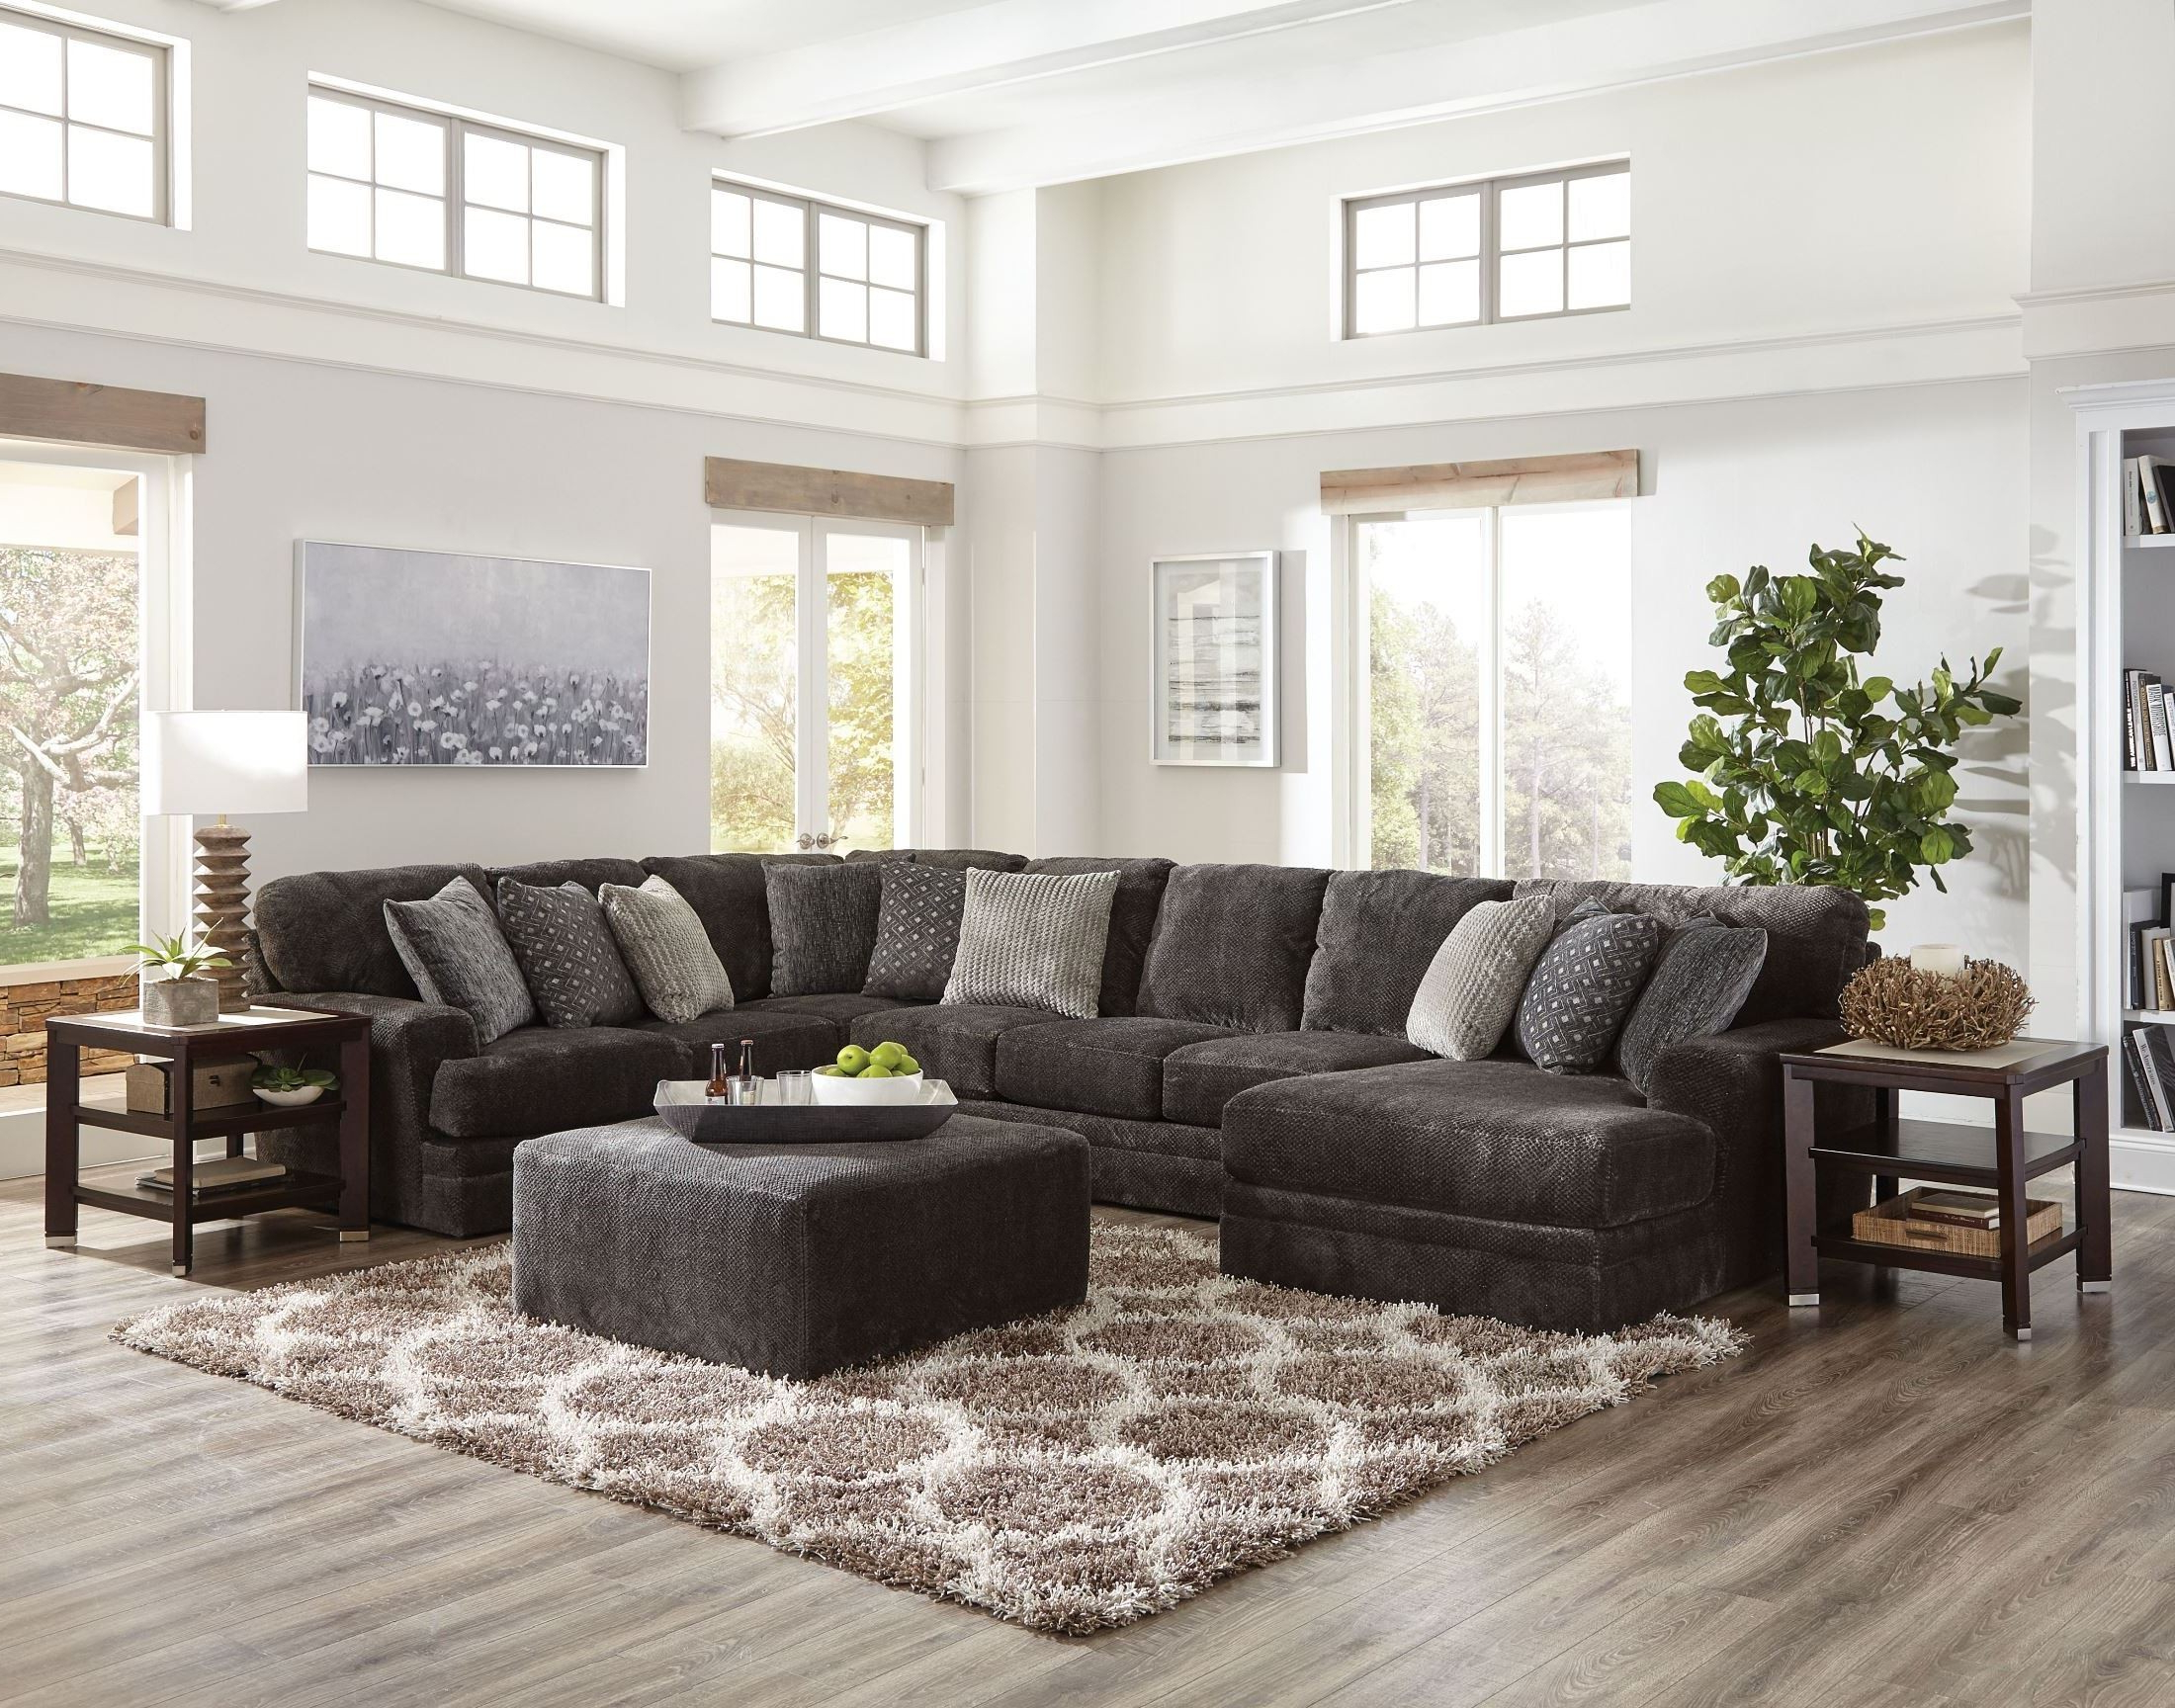 Coleman Furniture Throughout Most Current Avery 2 Piece Sectionals With Laf Armless Chaise (Gallery 5 of 20)